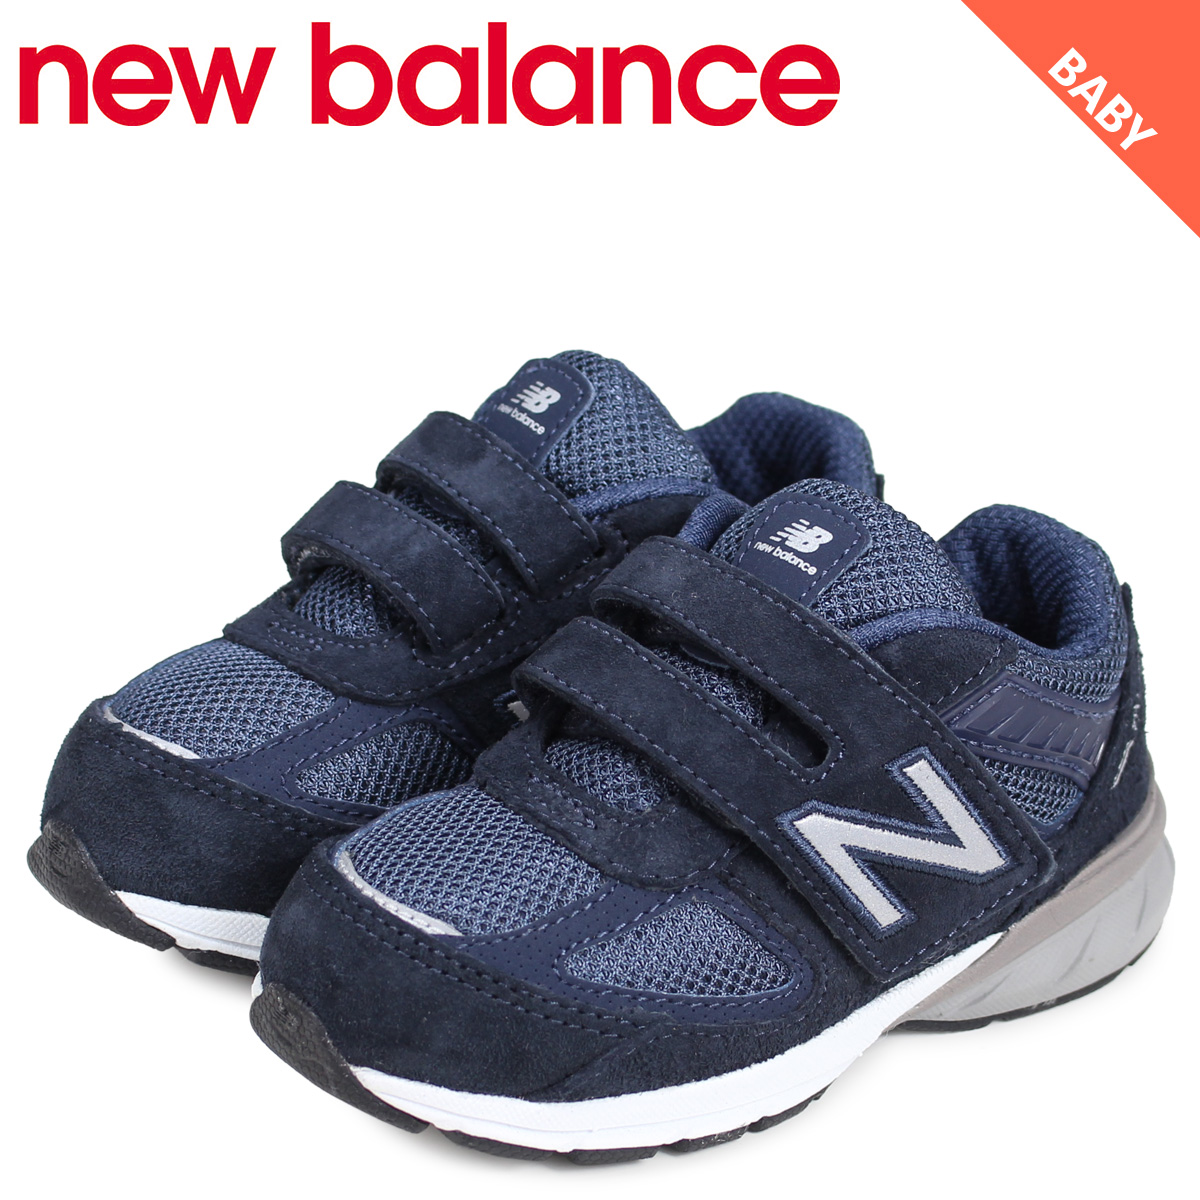 separation shoes 868d1 be6e3 new balance New Balance 990 sneakers baby kids navy IV990NV5